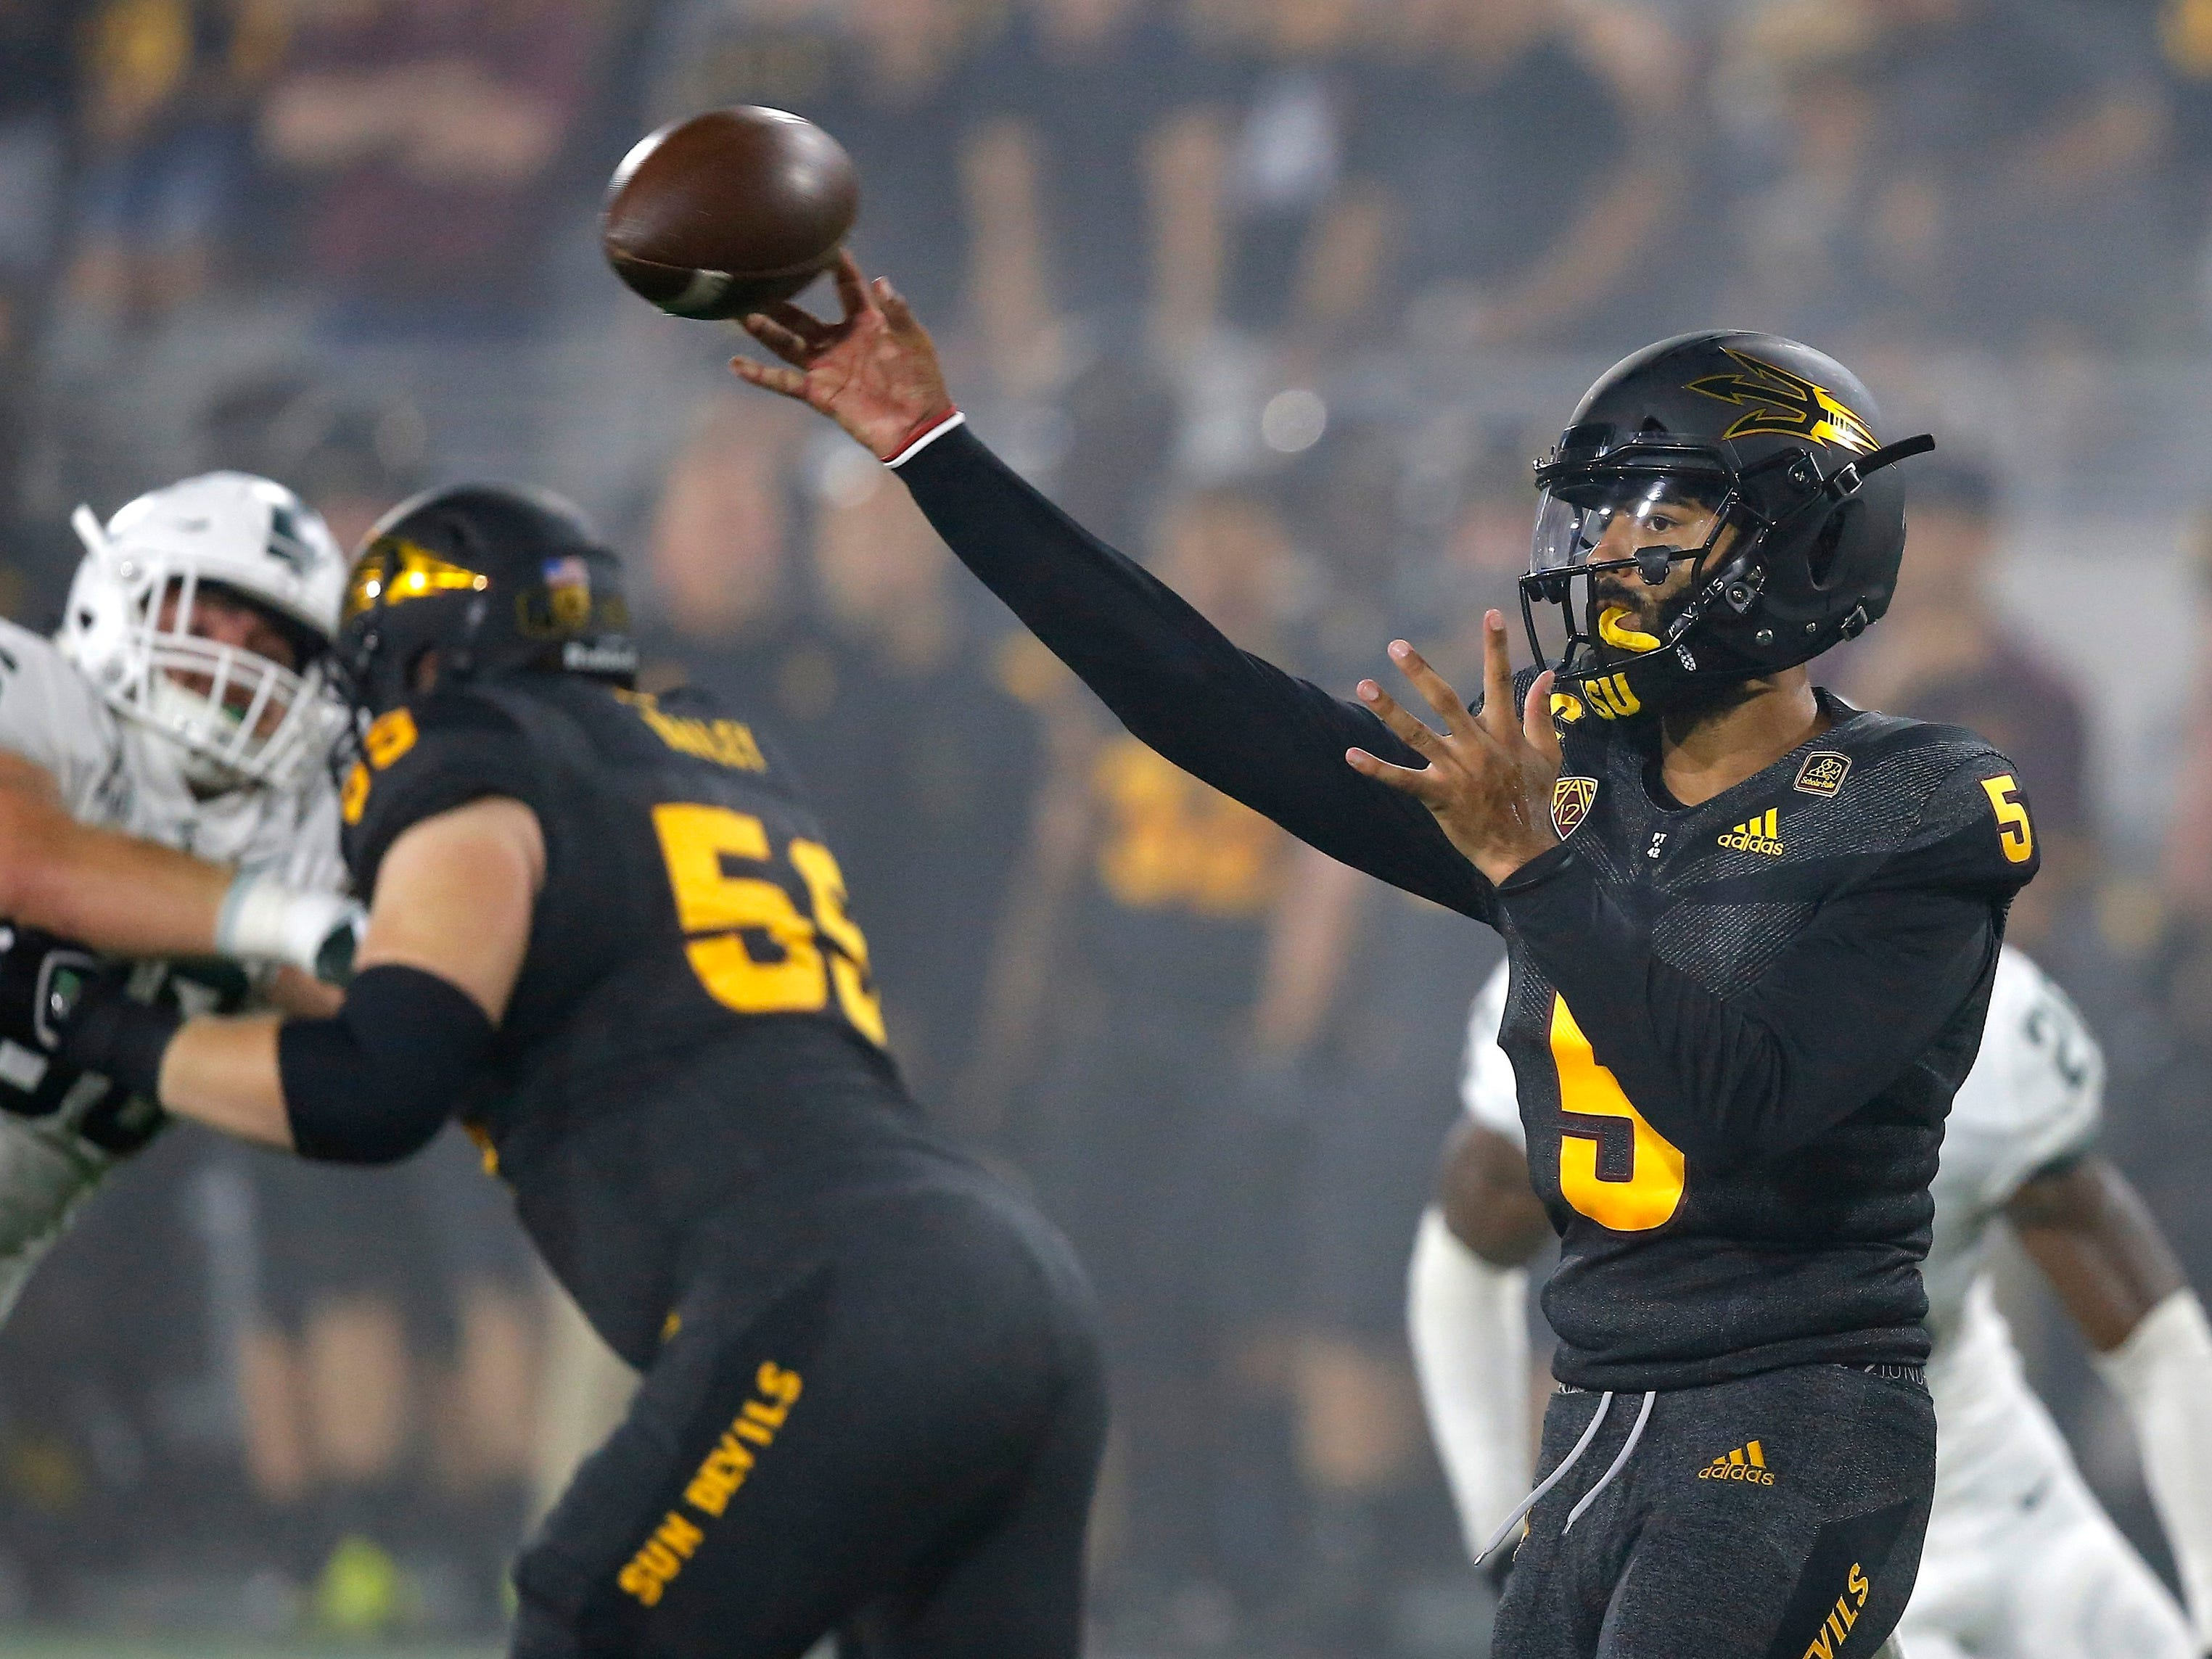 Arizona State quarterback Manny Wilkins (5) throws a pass against Michigan State during the first half of an NCAA college football game Saturday, Sept. 8, 2018, in Tempe, Ariz.